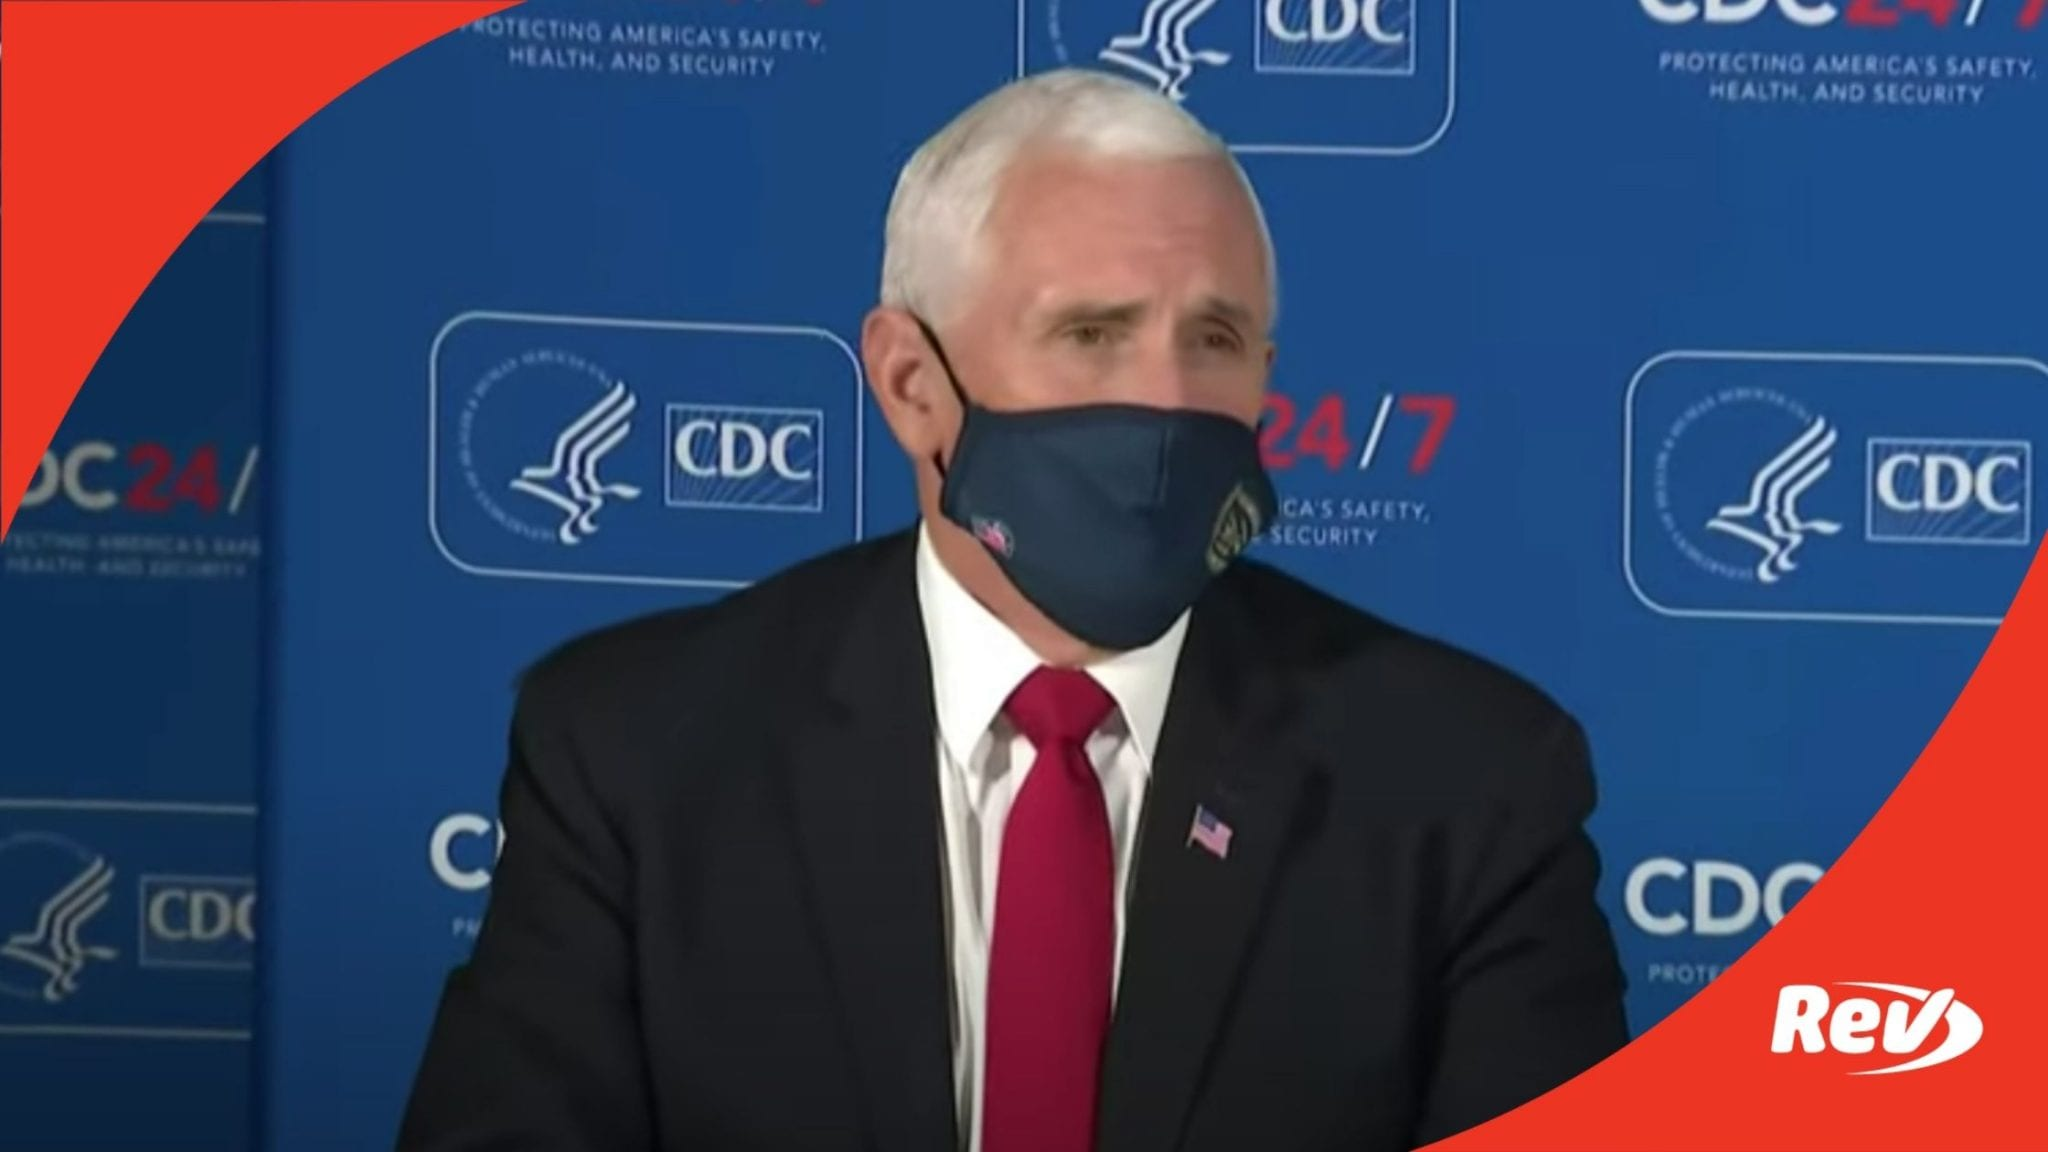 Mike Pence & CDC Discussion on COVID-19 Vaccine Transcript December 4